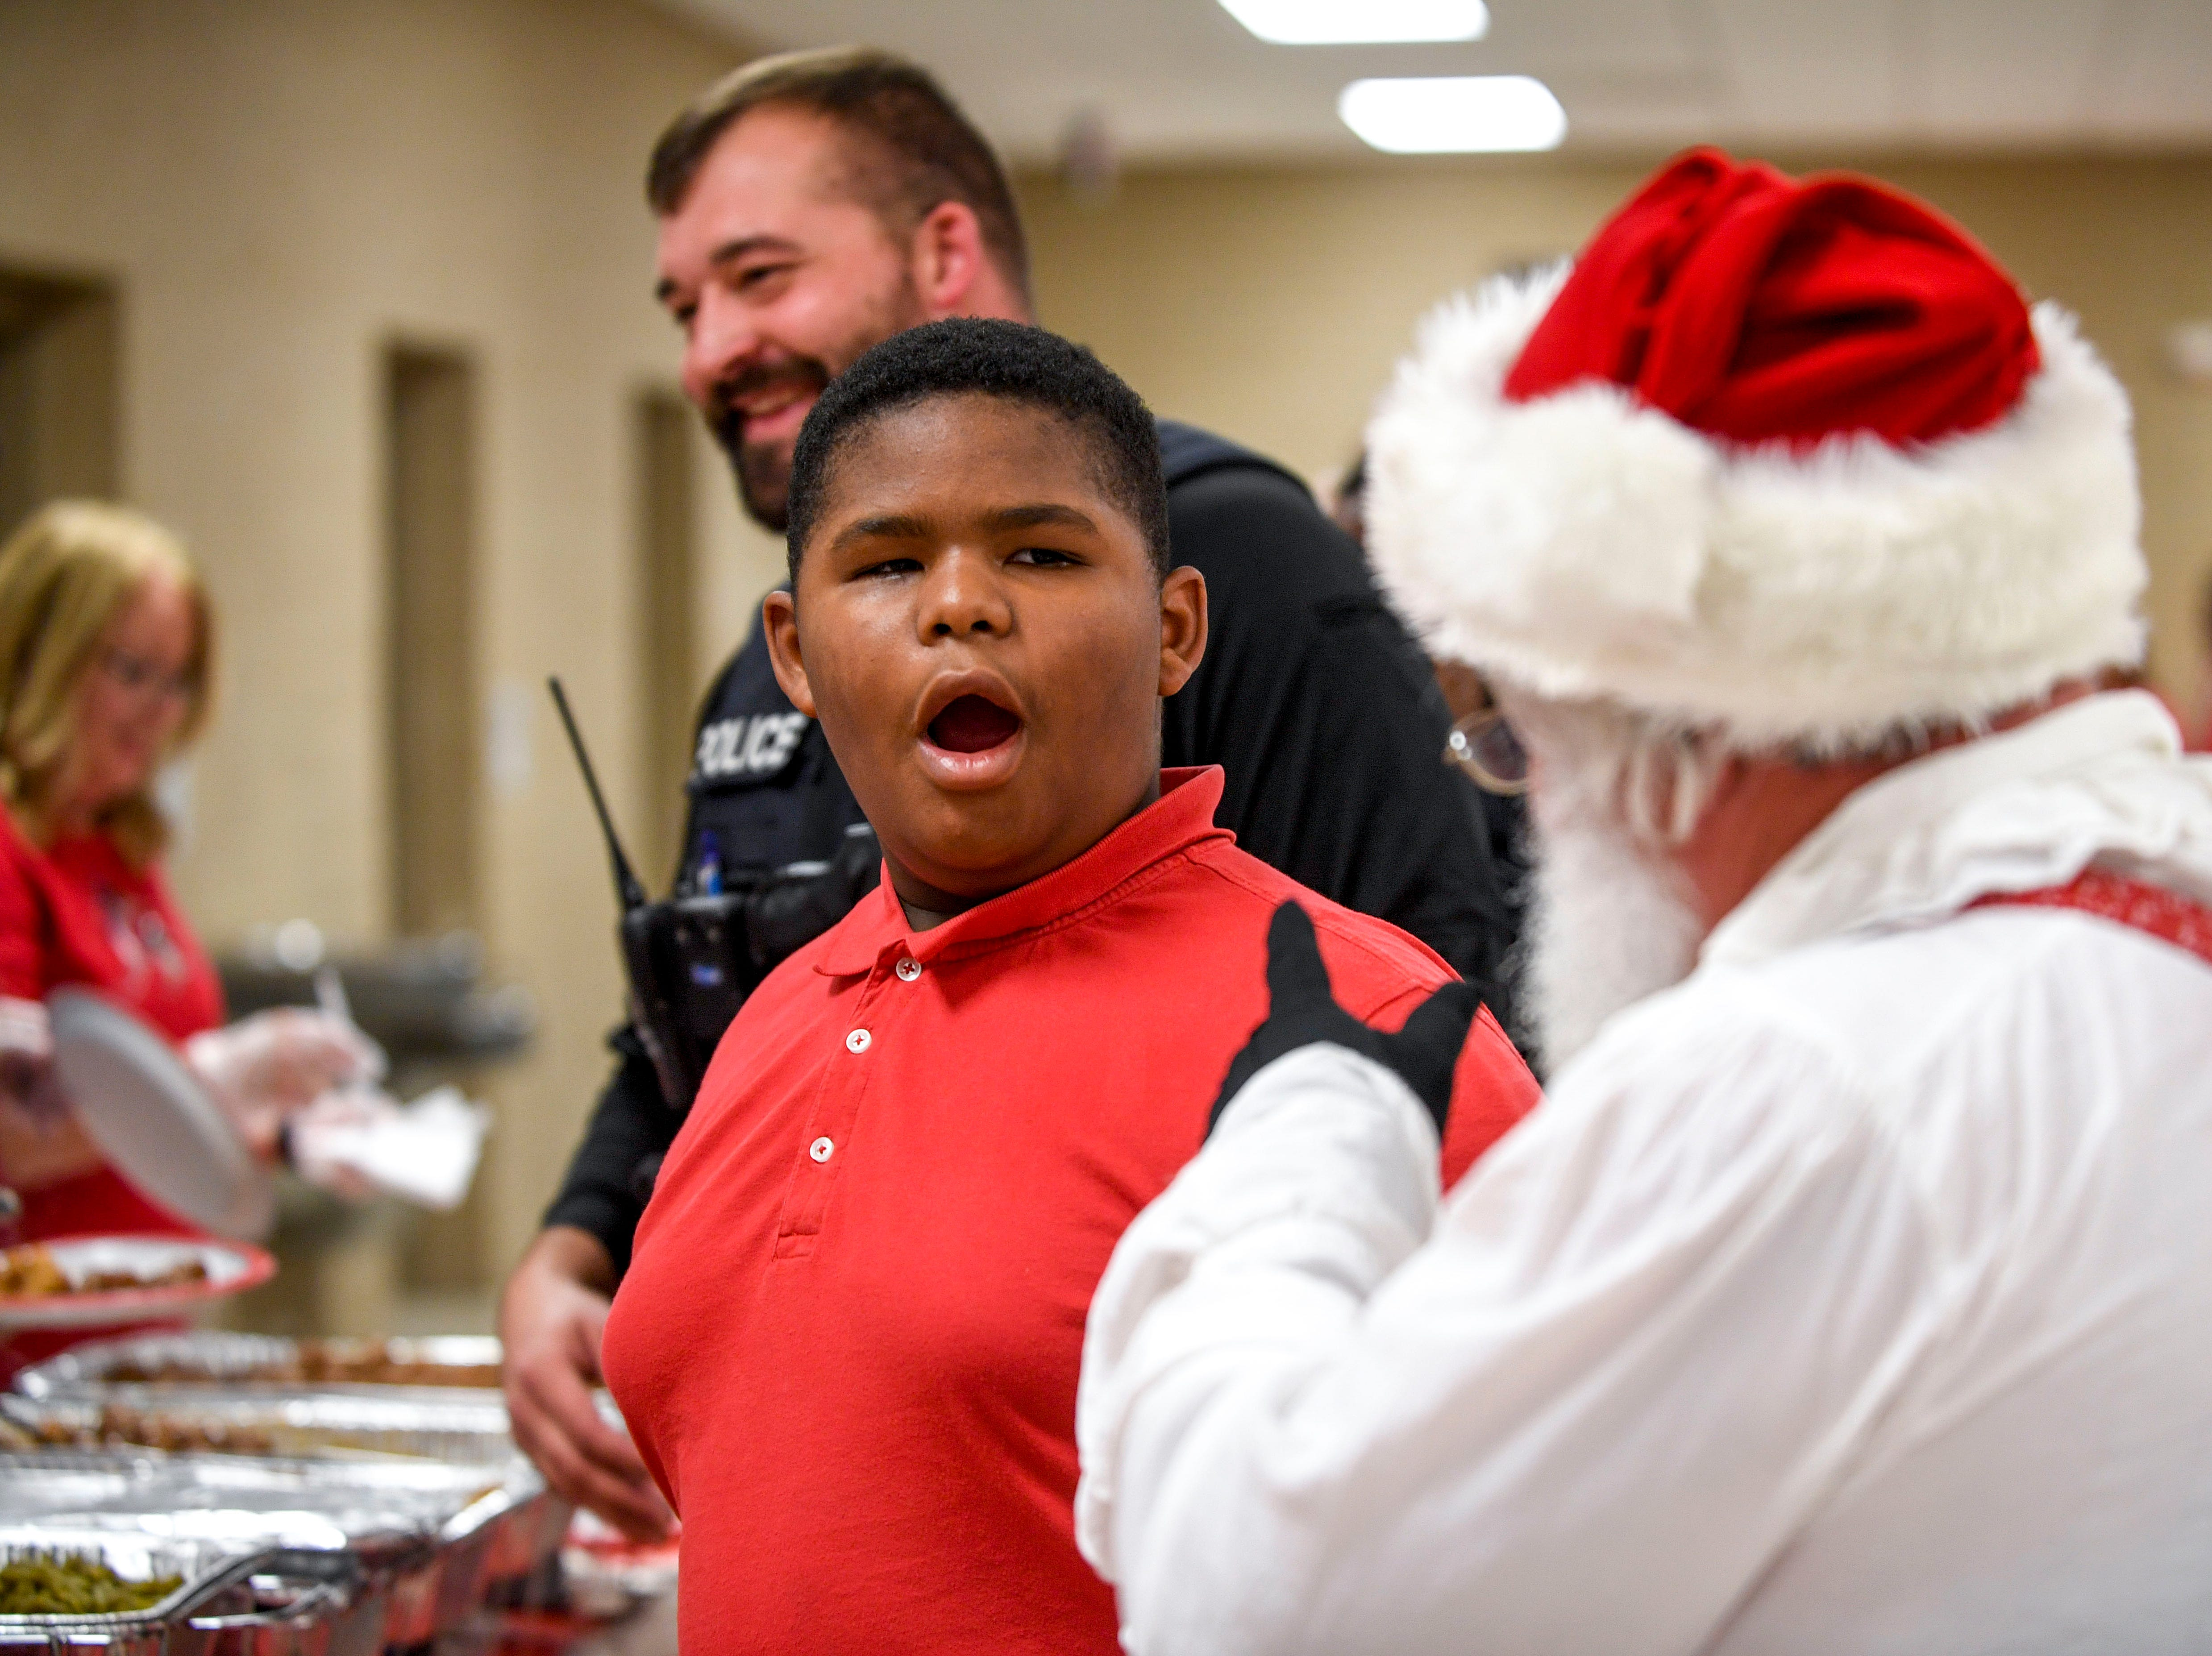 Santa Claus points out that Omar Pirtle's, 11, eyes indicate that he backtalks a lot, to which Pirtle reacts during the matching time for Shop with a Cop at Hawkins-Whitby Fema Community Safe Room in Milan, Tenn., on Thursday, Dec. 13, 2018.